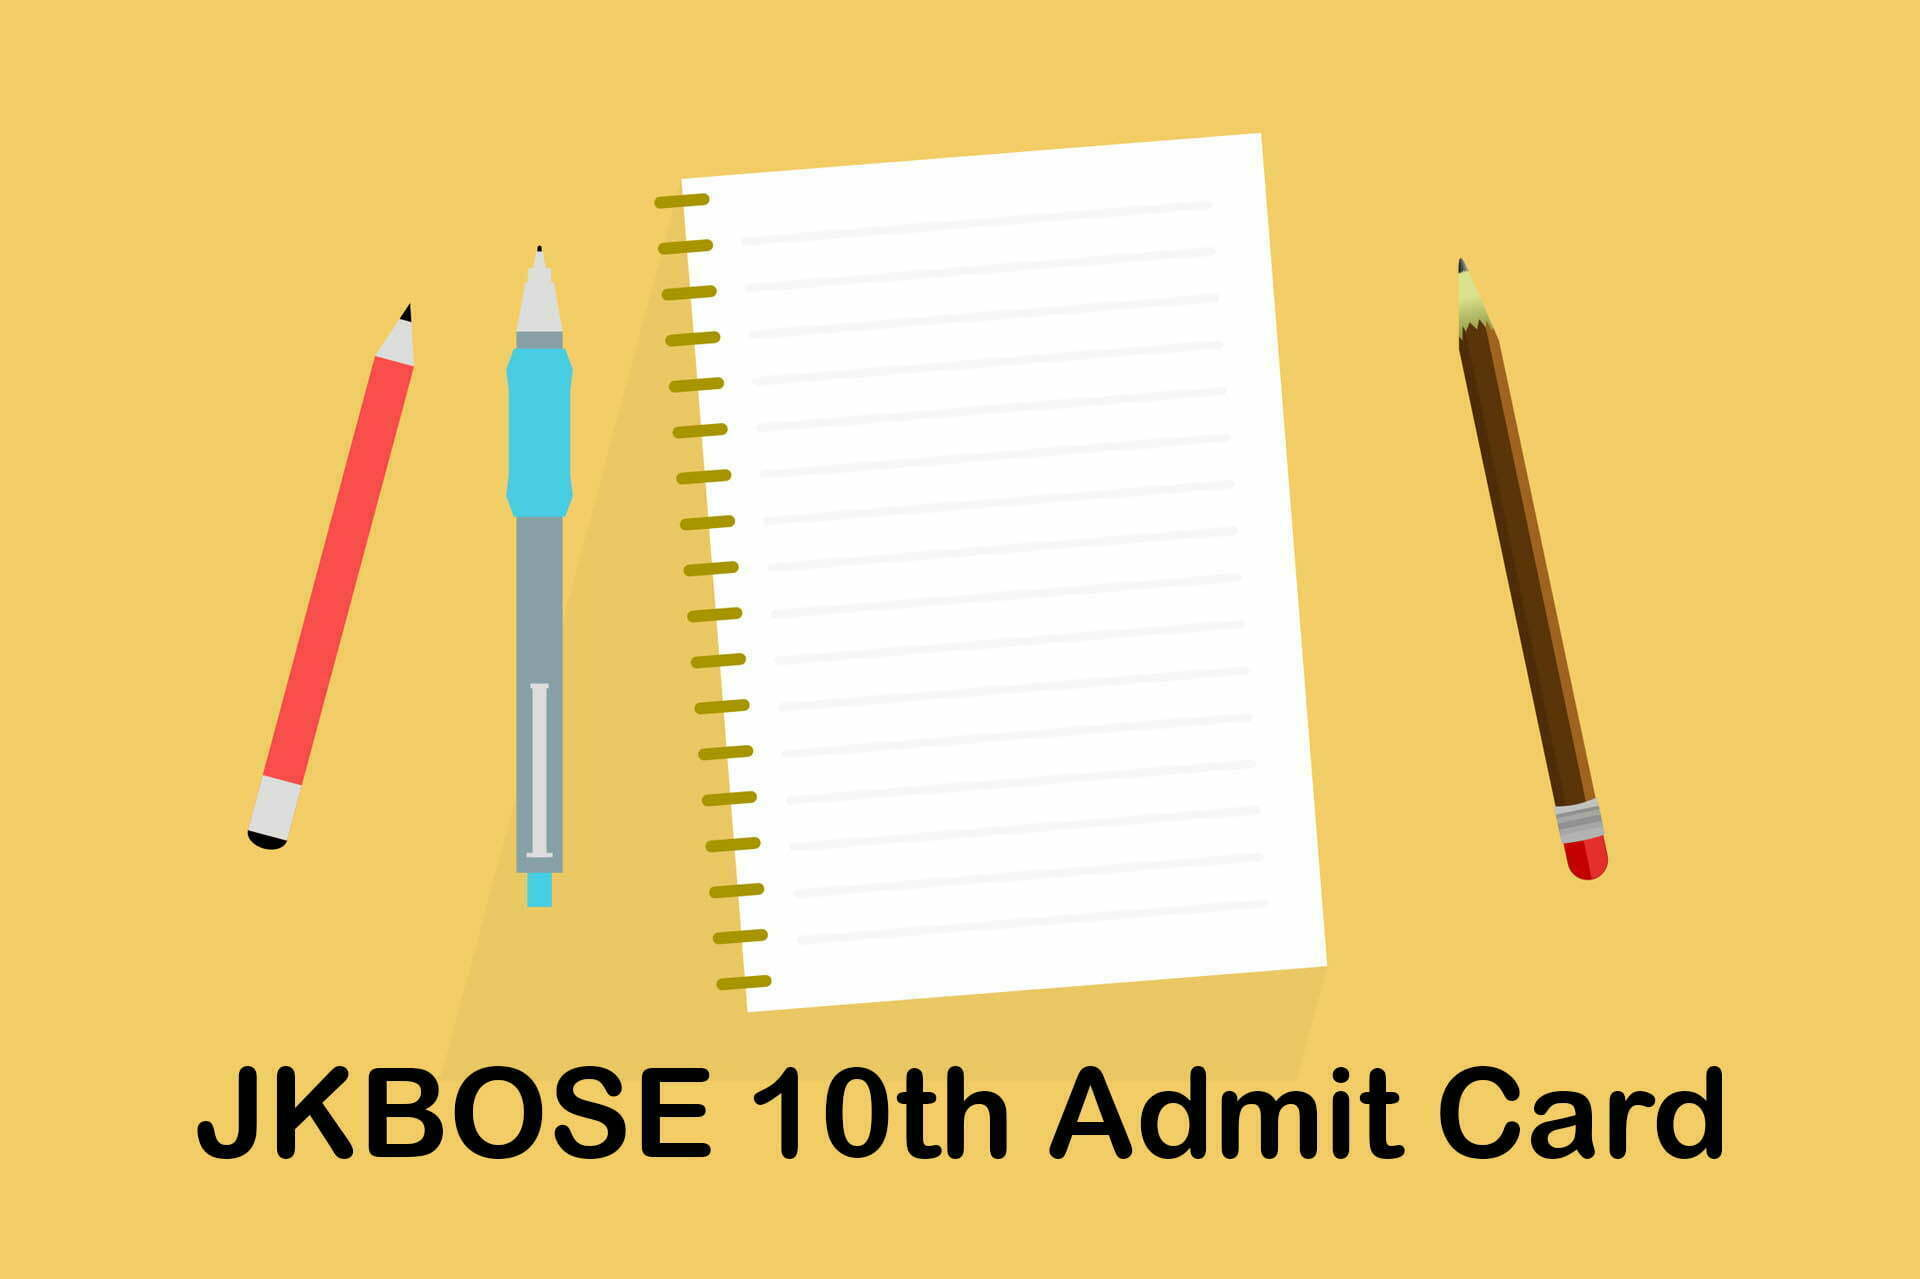 JKBOSE 10th Admit Card